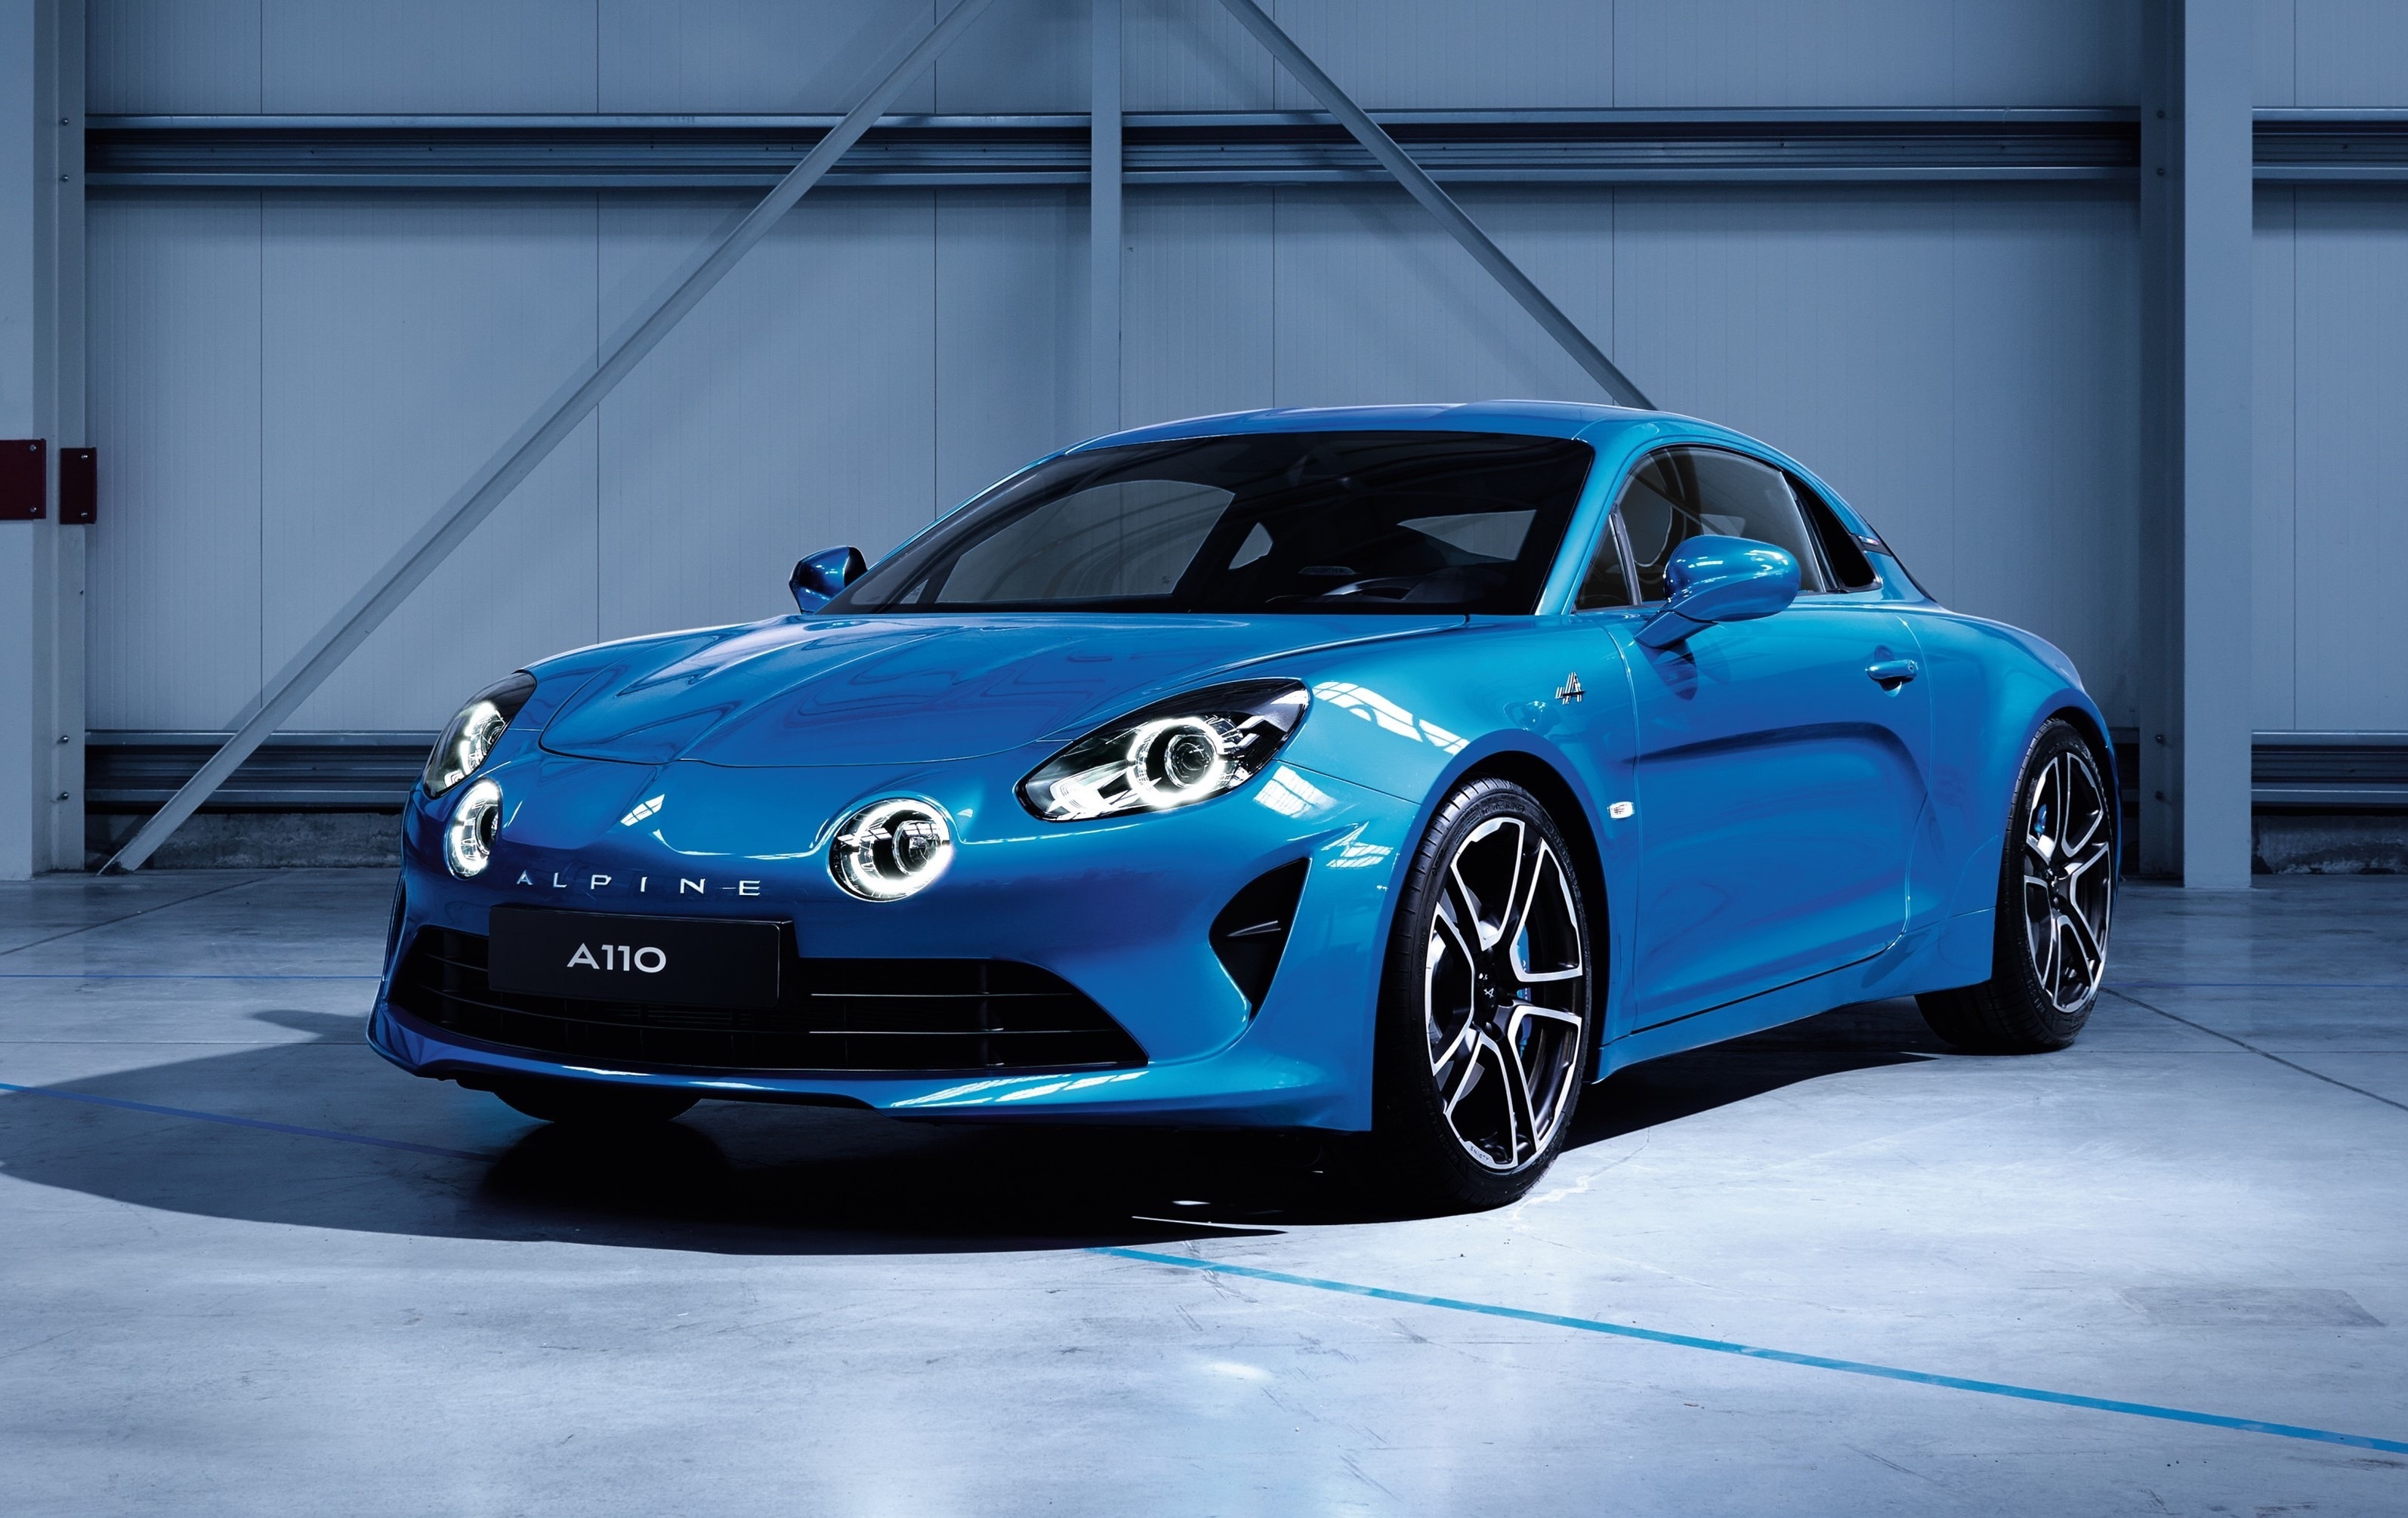 Alpine A110 Les Premi 232 Res Photos Officielles Salon De